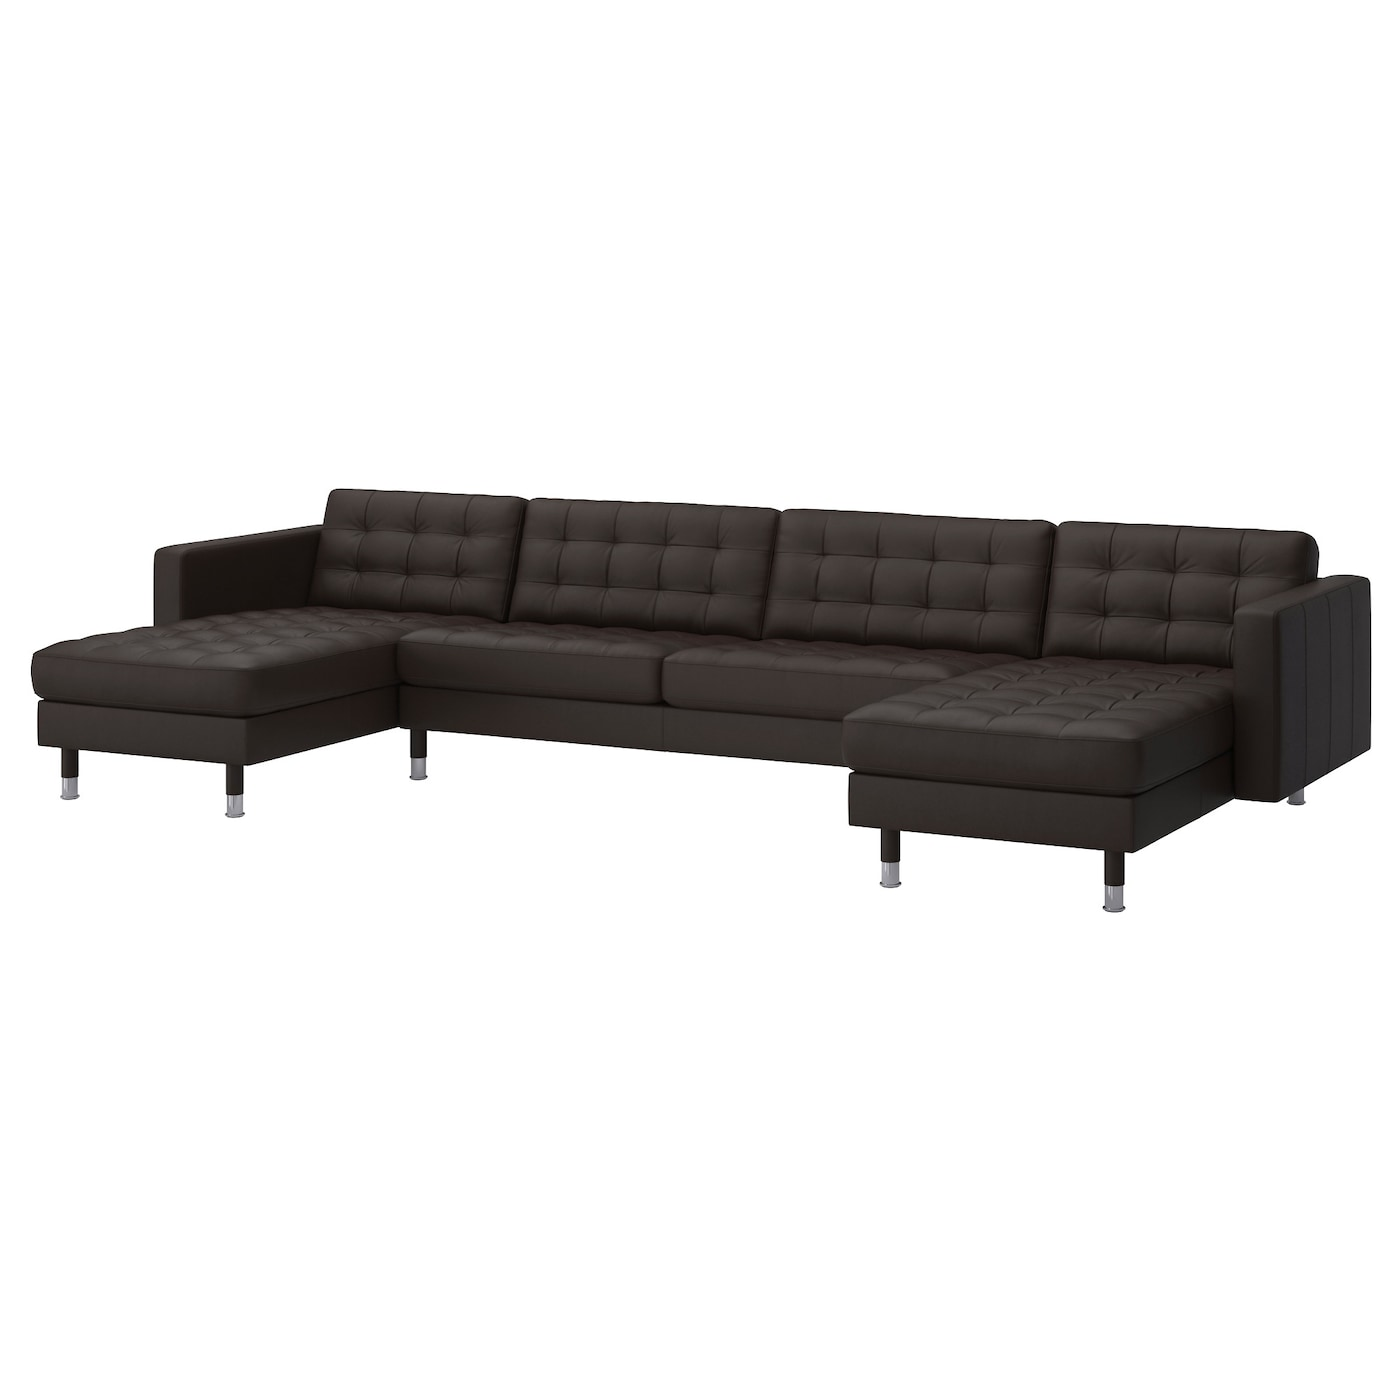 Landskrona 2 chaise longues three seat sofa grann for 2 5 seater chaise